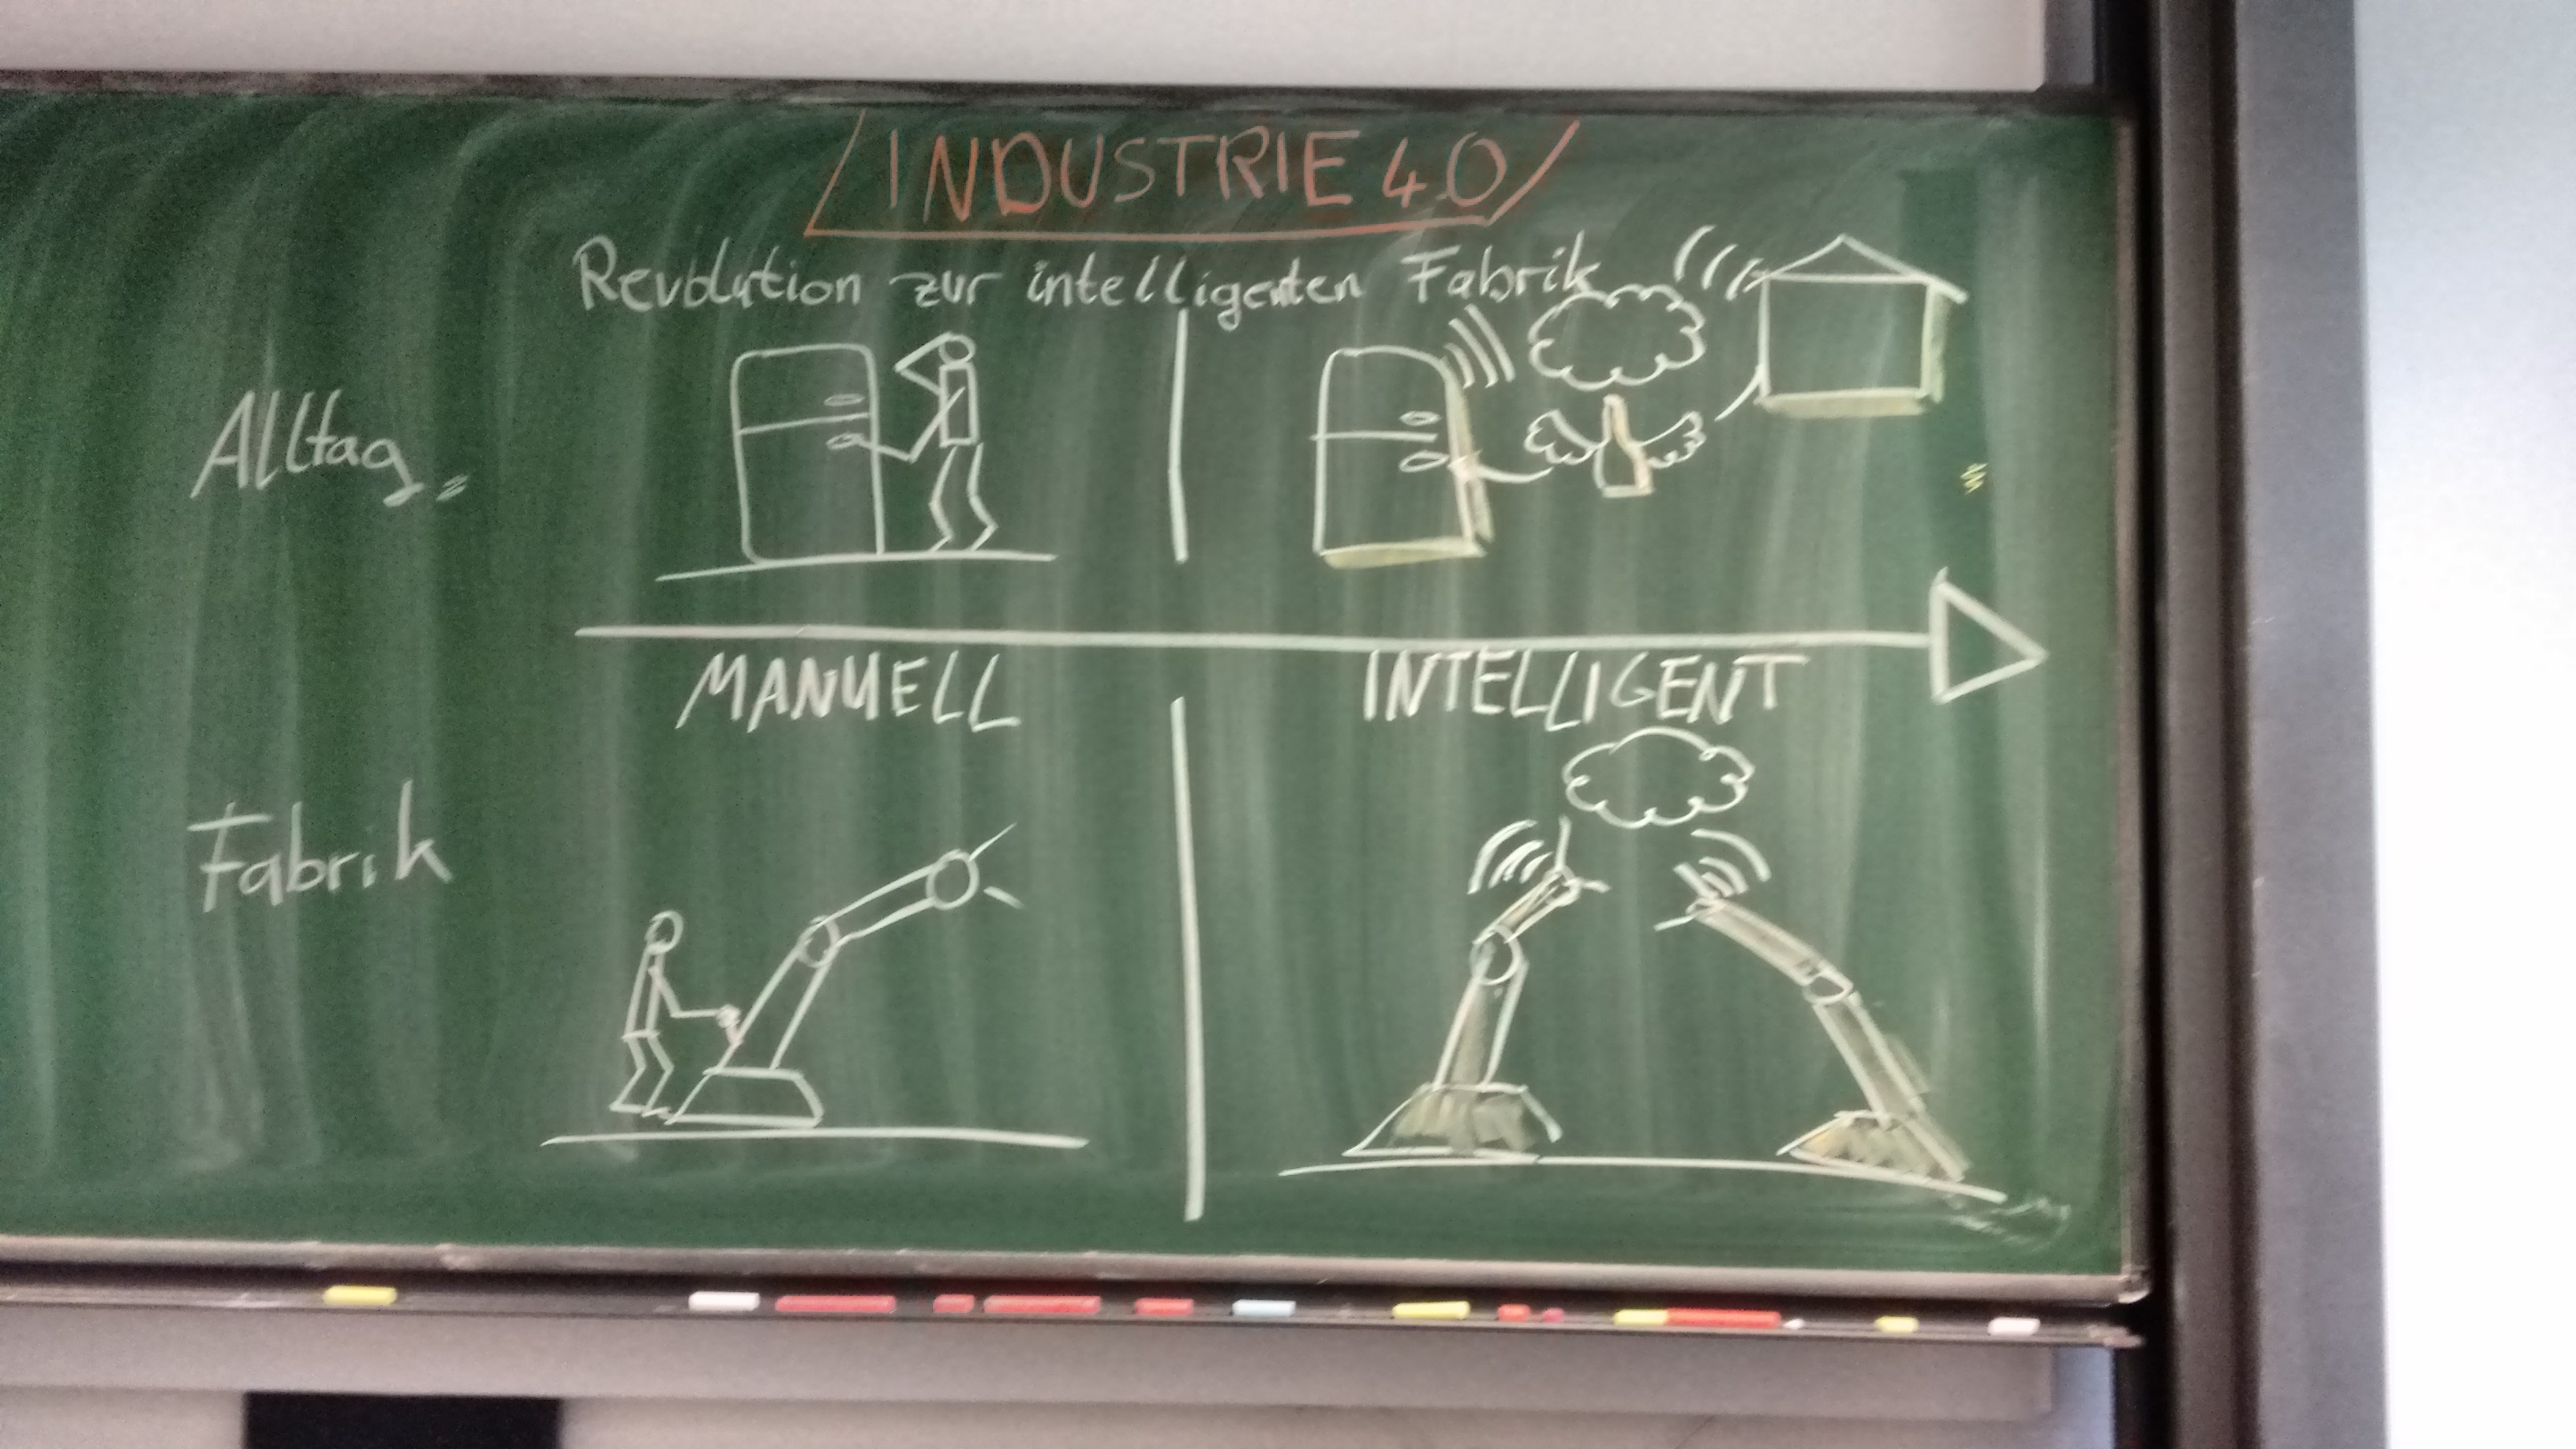 2.2-Industrie 4.0